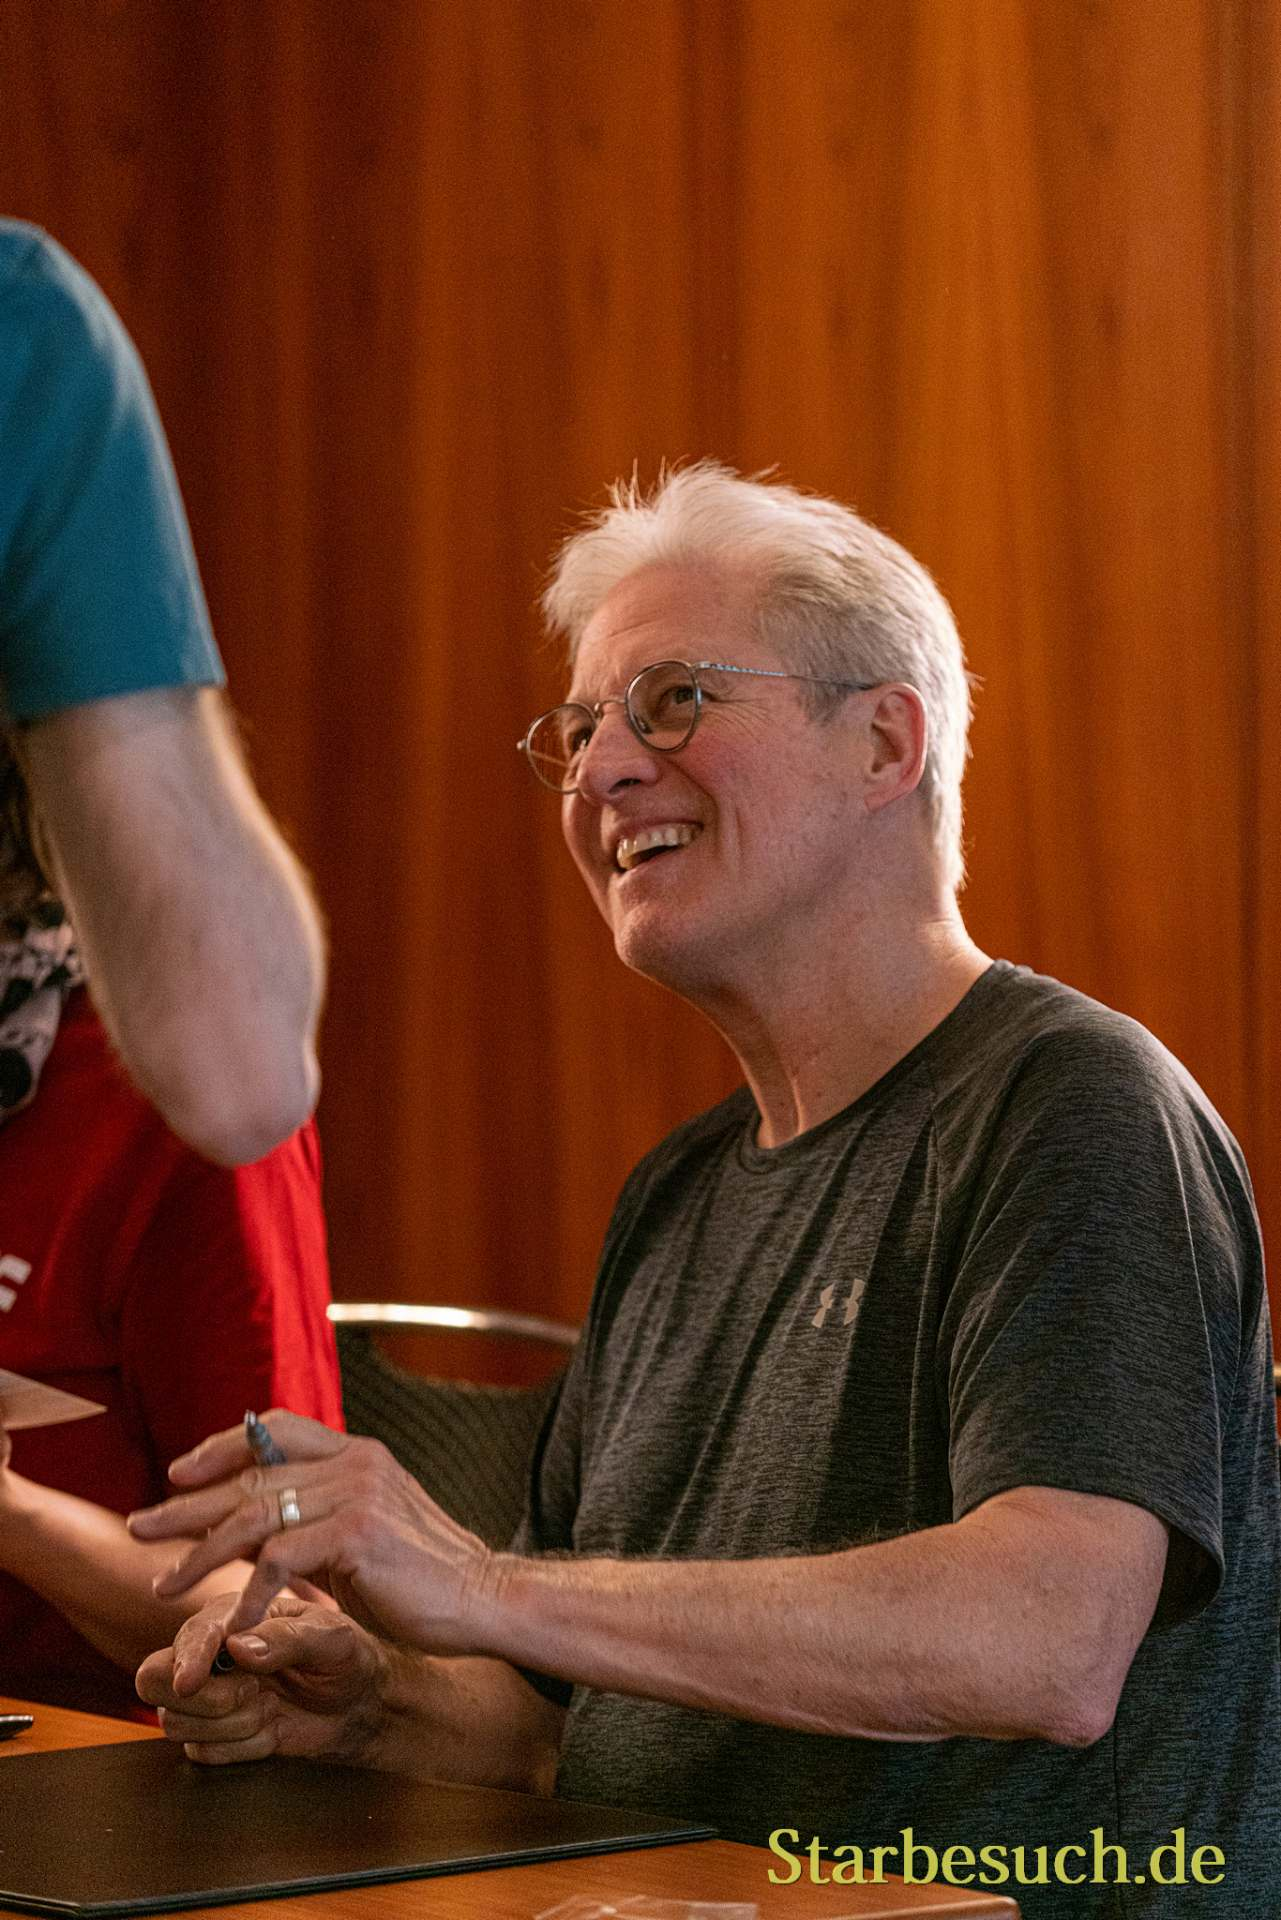 Bonn, Germany - June 8 2019: Bruce Boxleitner (*1950, actor, writer - Babylon 5) is happy to meet fans at FedCon 28, a four day sci-fi convention. FedCon 28 took place Jun 7-10 2019.